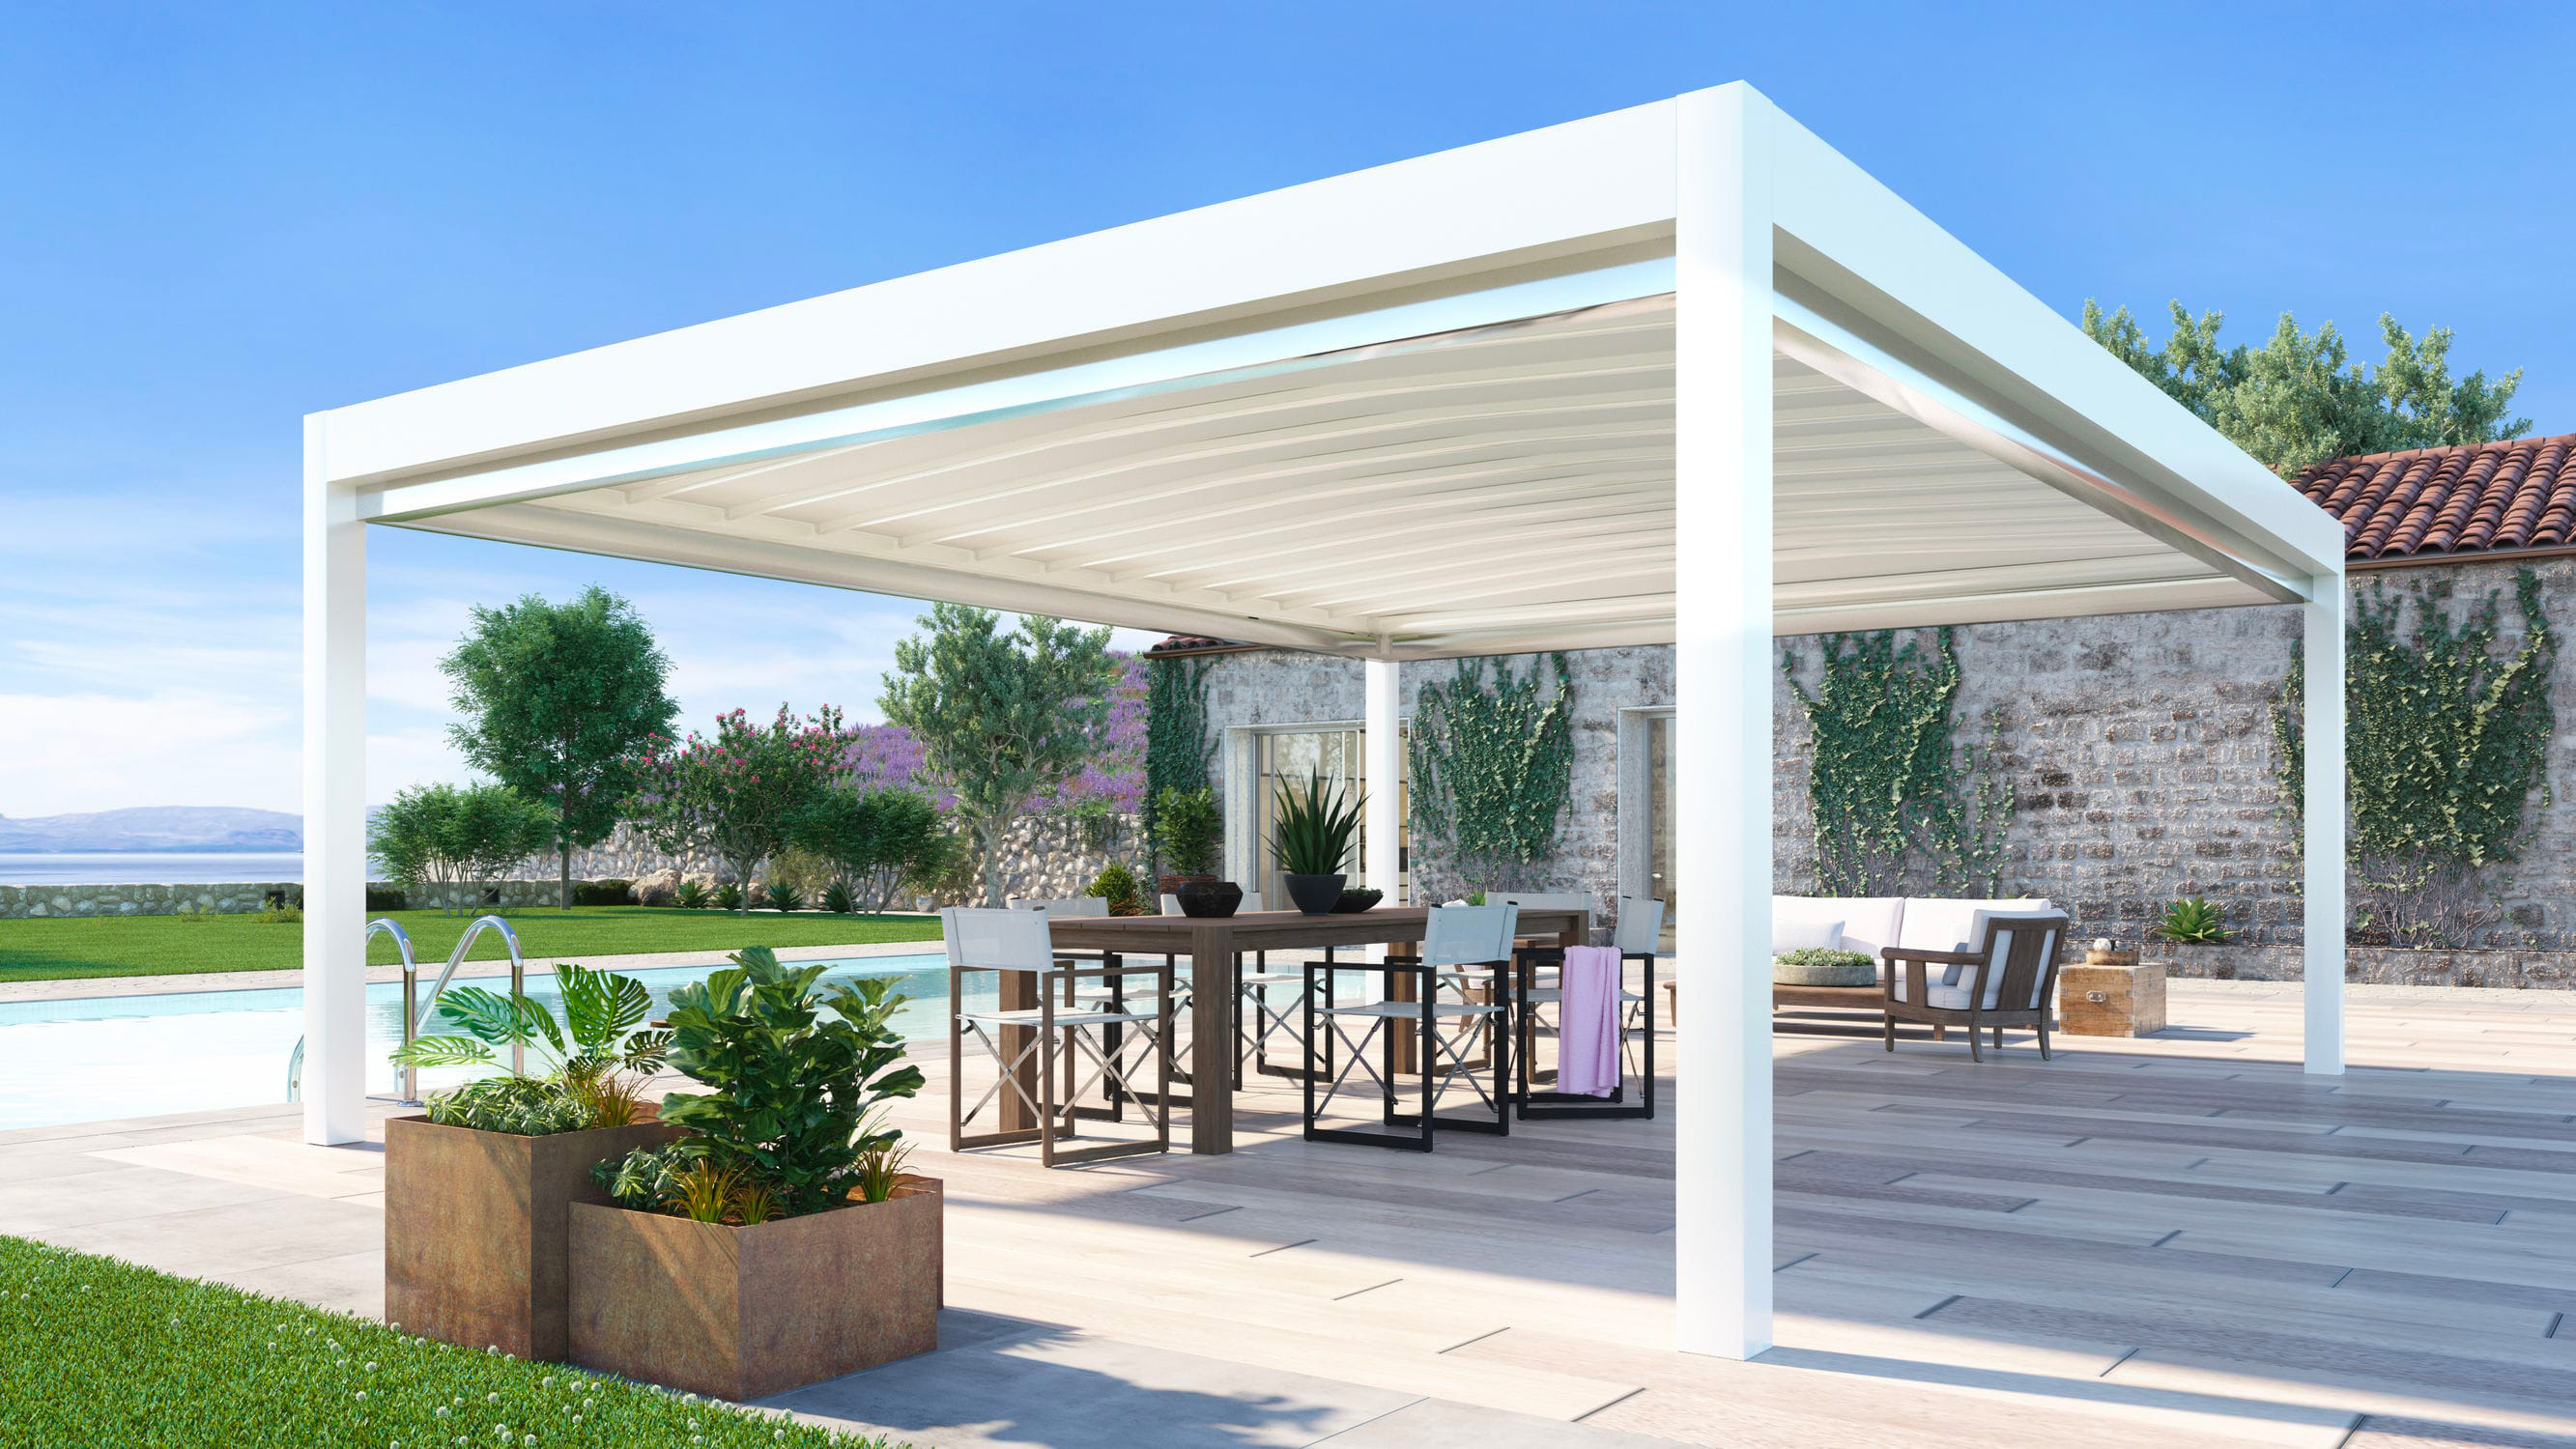 Self-supporting pergola / aluminum / with mobile slats / with sliding canopy